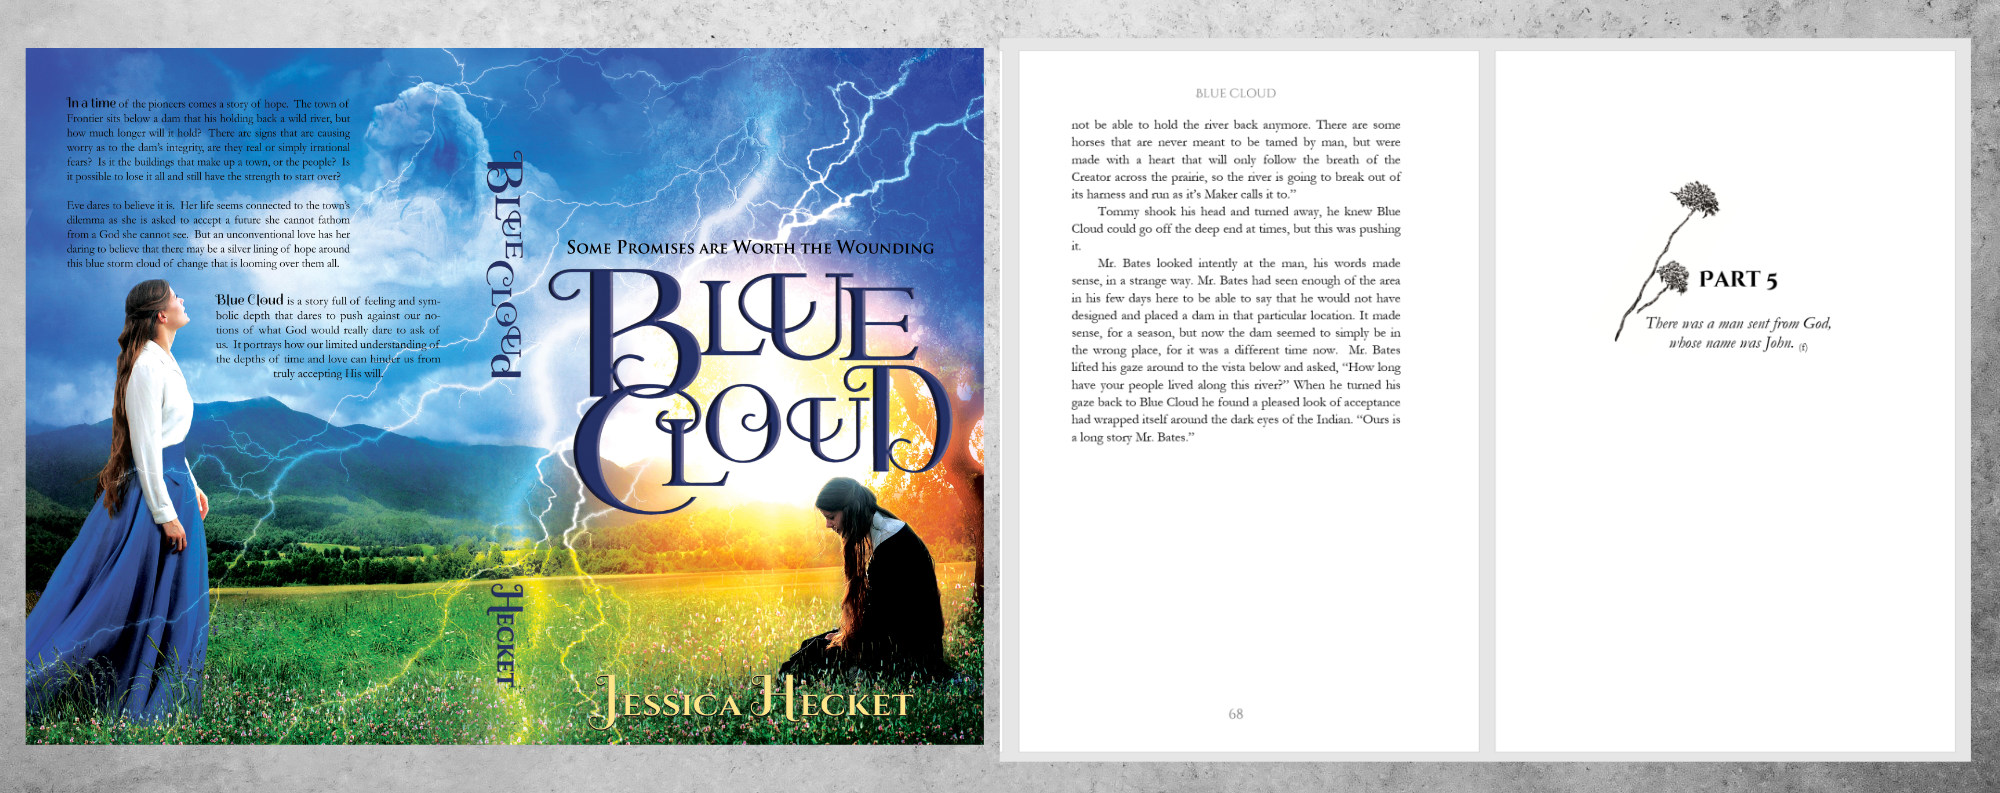 Example image of book Blue Cloud by Jessica Hecket